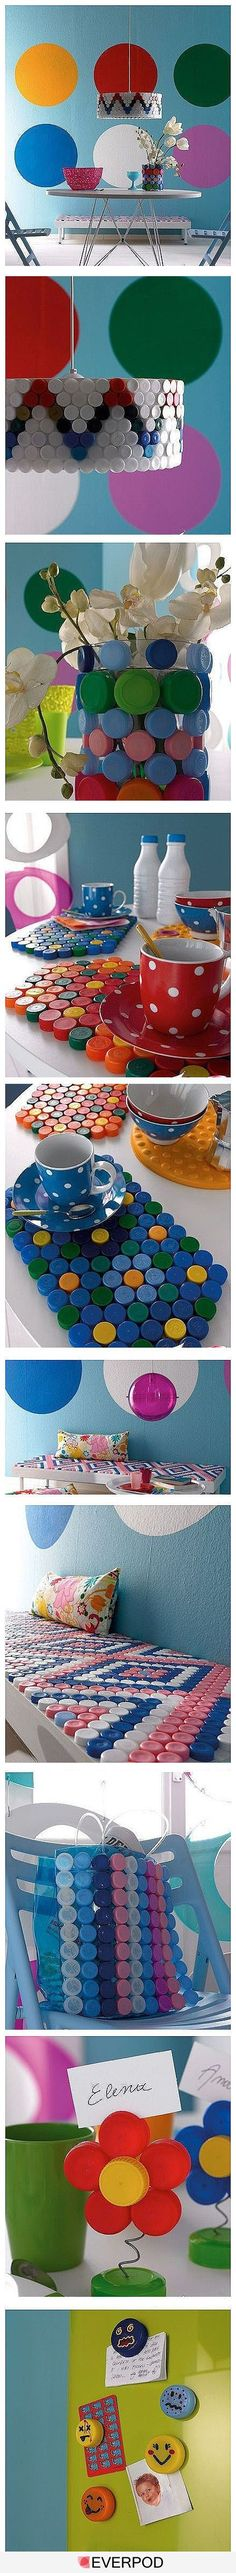 lids and caps from bottles, milk jugs, juice containers, etc. can make awesome DIY projects: